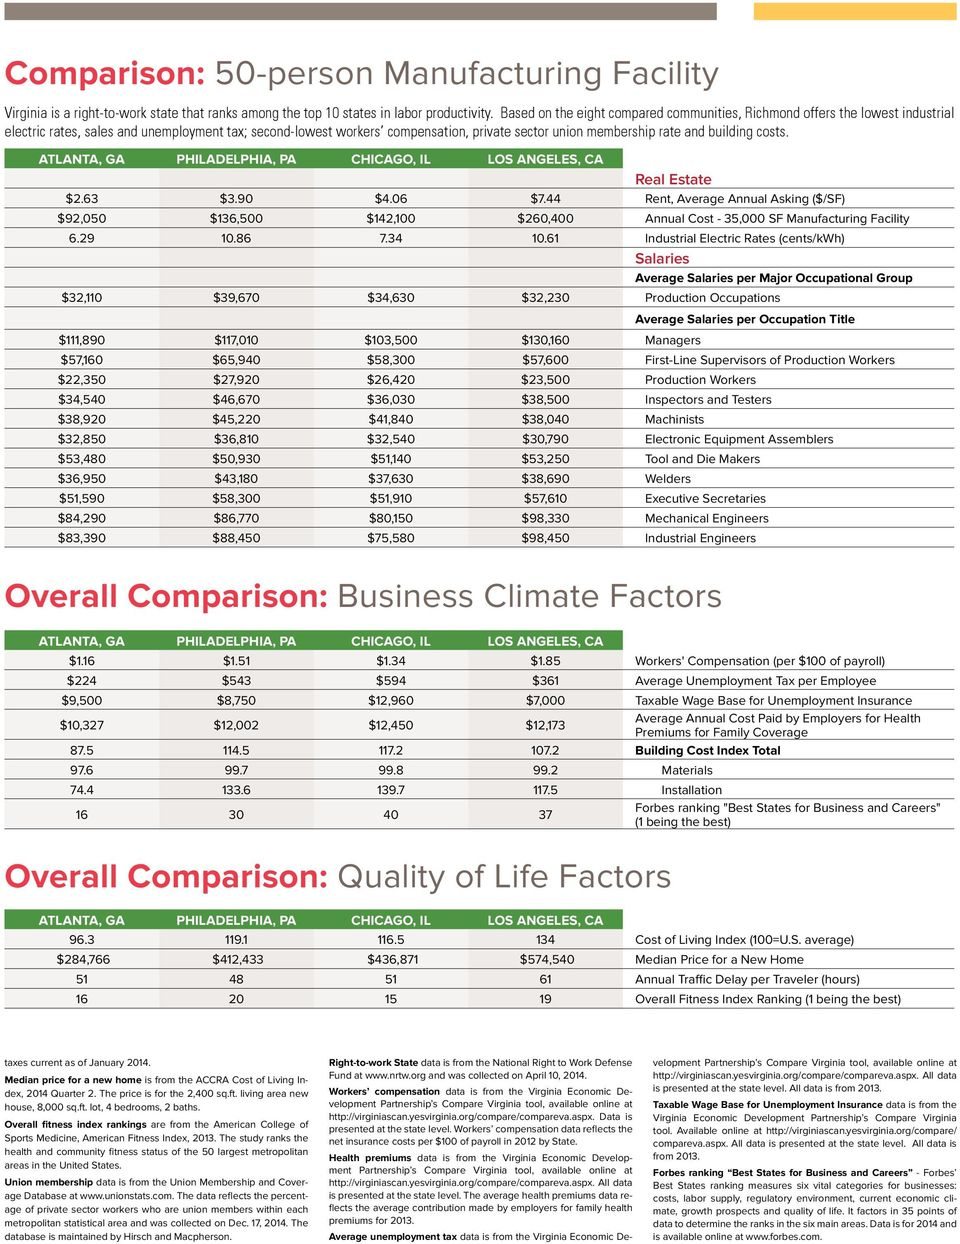 building costs. eal Estate $2.63 $3.90 $4.06 $7.44 ent, Average Annual Asking ($/SF) $92,050 $136,500 $142,100 $260,400 Annual Cost - 35,000 SF Manufacturing Facility 6.29 10.86 7.34 10.